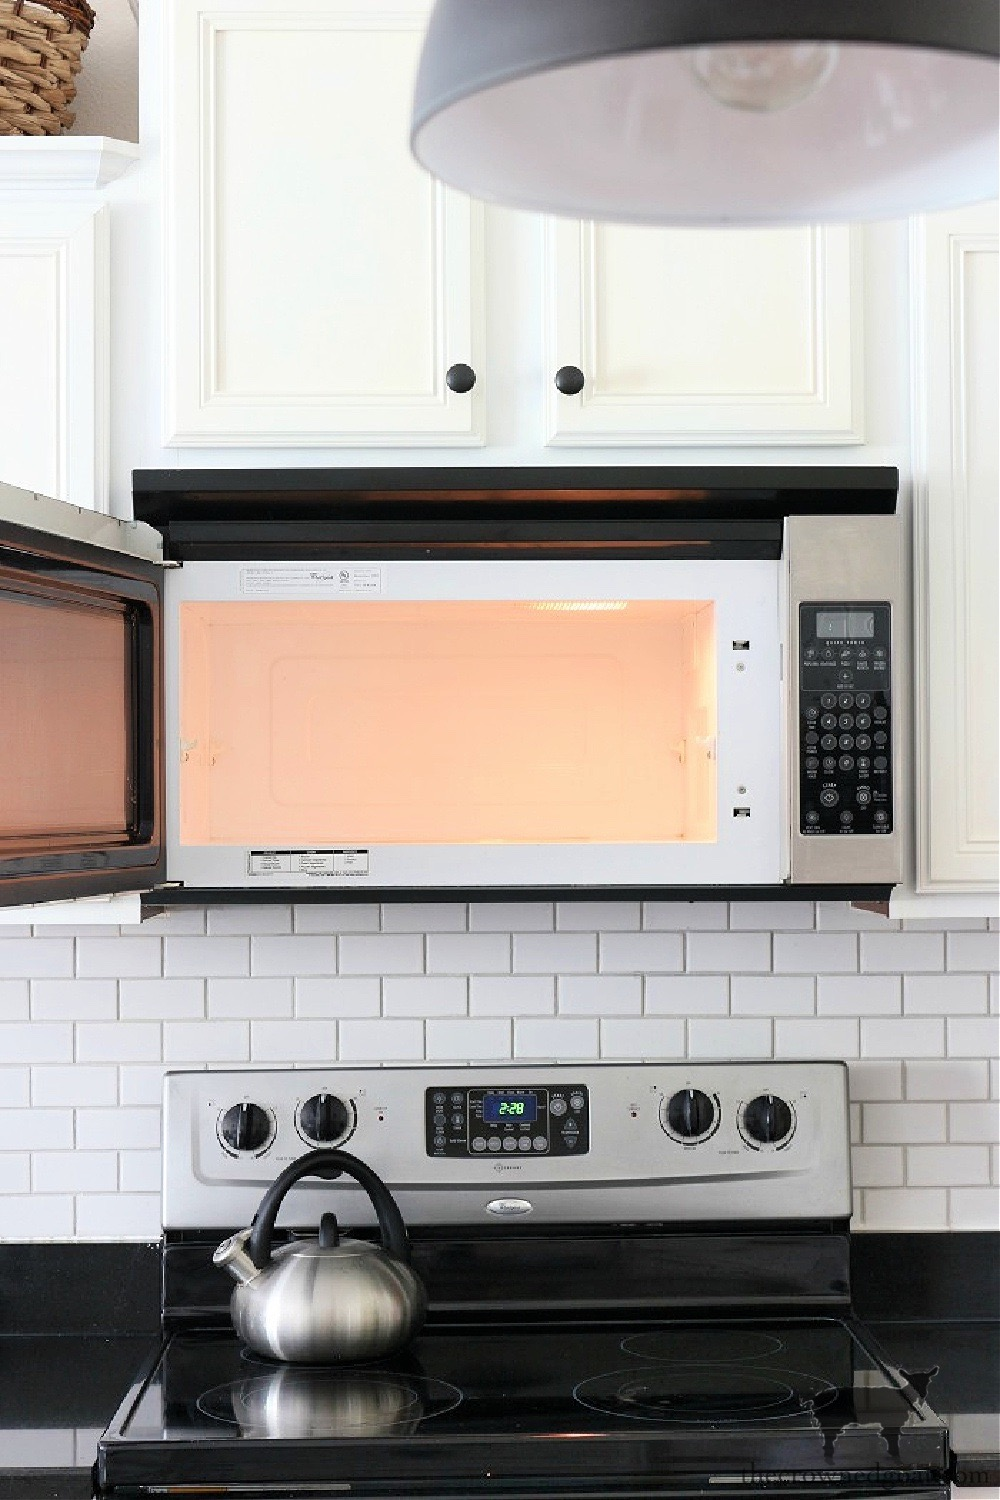 11 Ways to Clean, Maintain, and Organize Your Kitchen-Microwave Cleaning-The Crowned Goat